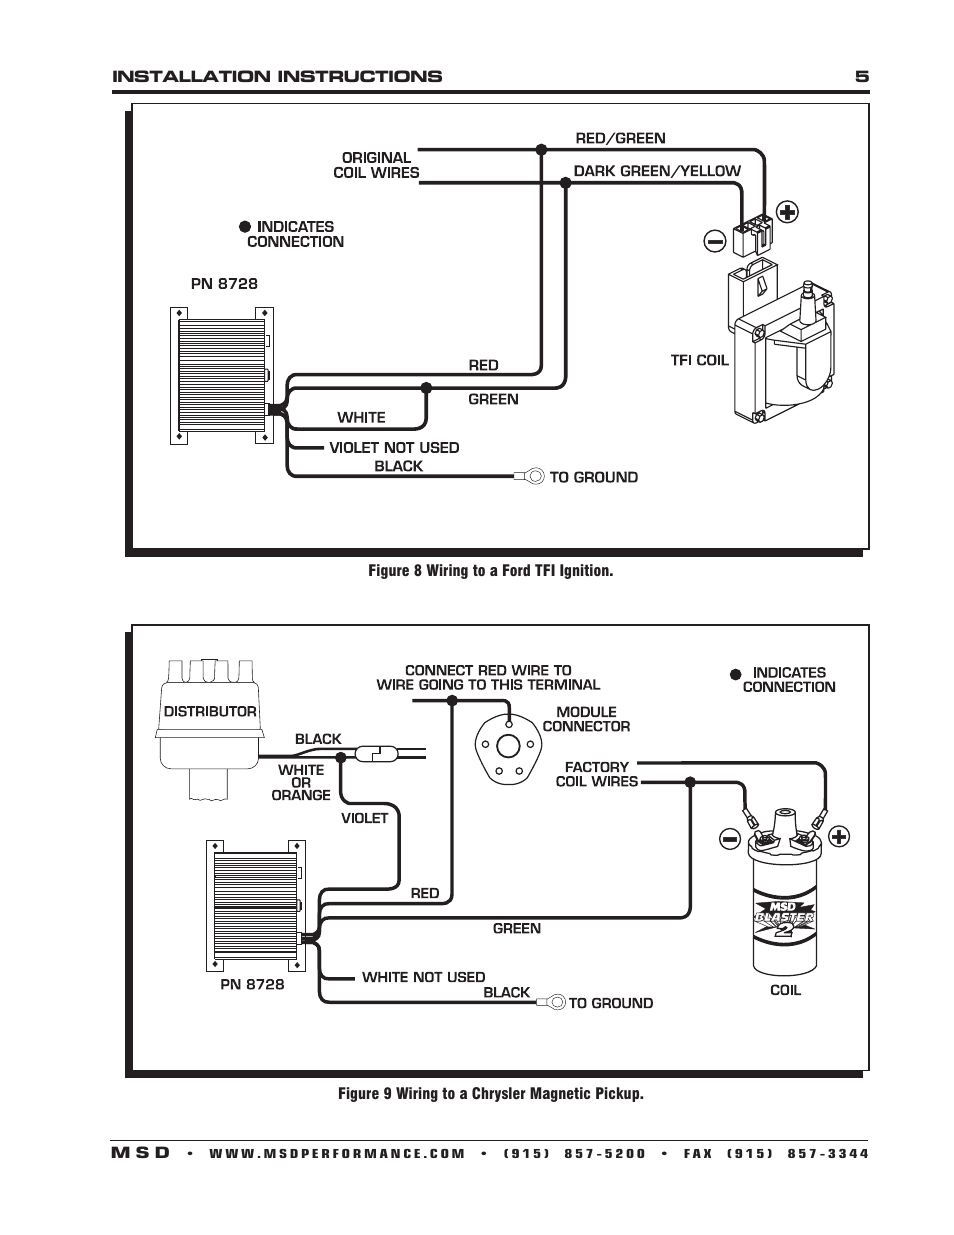 rev wiring diagram rev limiter msd 6a wiring diagram msd ignition rev limiter ski doo rev wire diagram